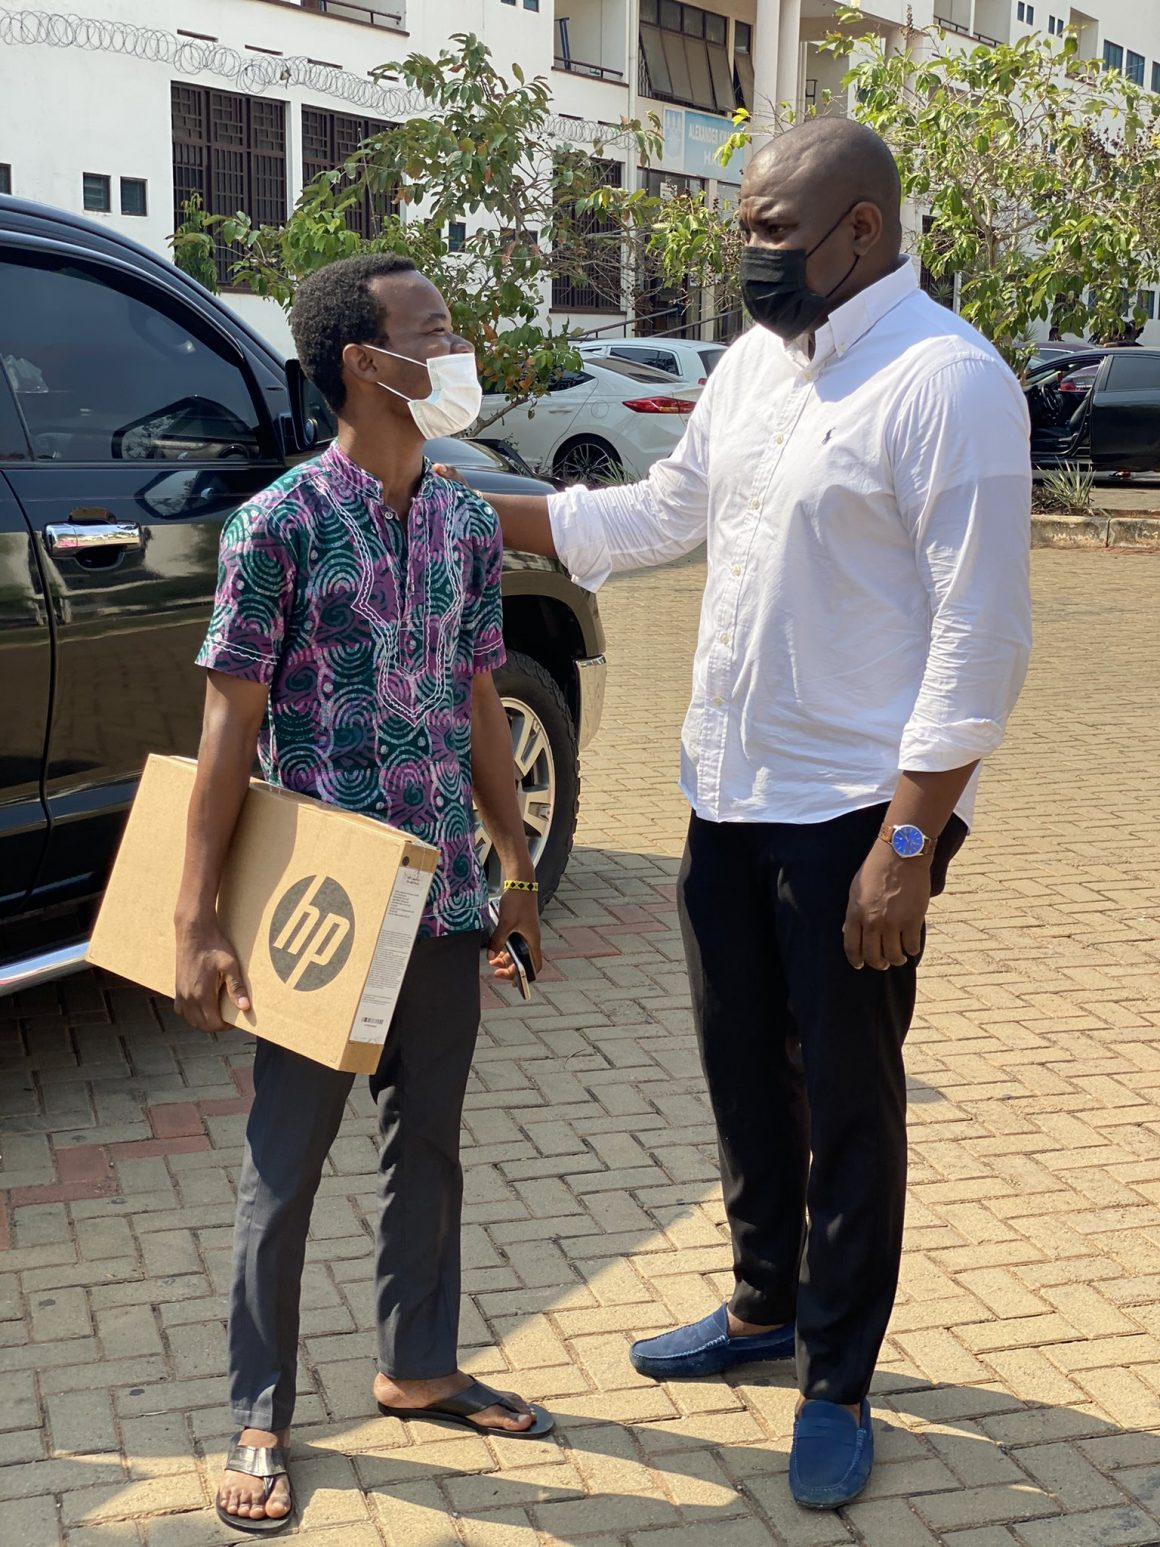 i-still-dey-for-you-john-dumelo-continues-to-do-'the-lord's-work'-even-after-losing-the-elections